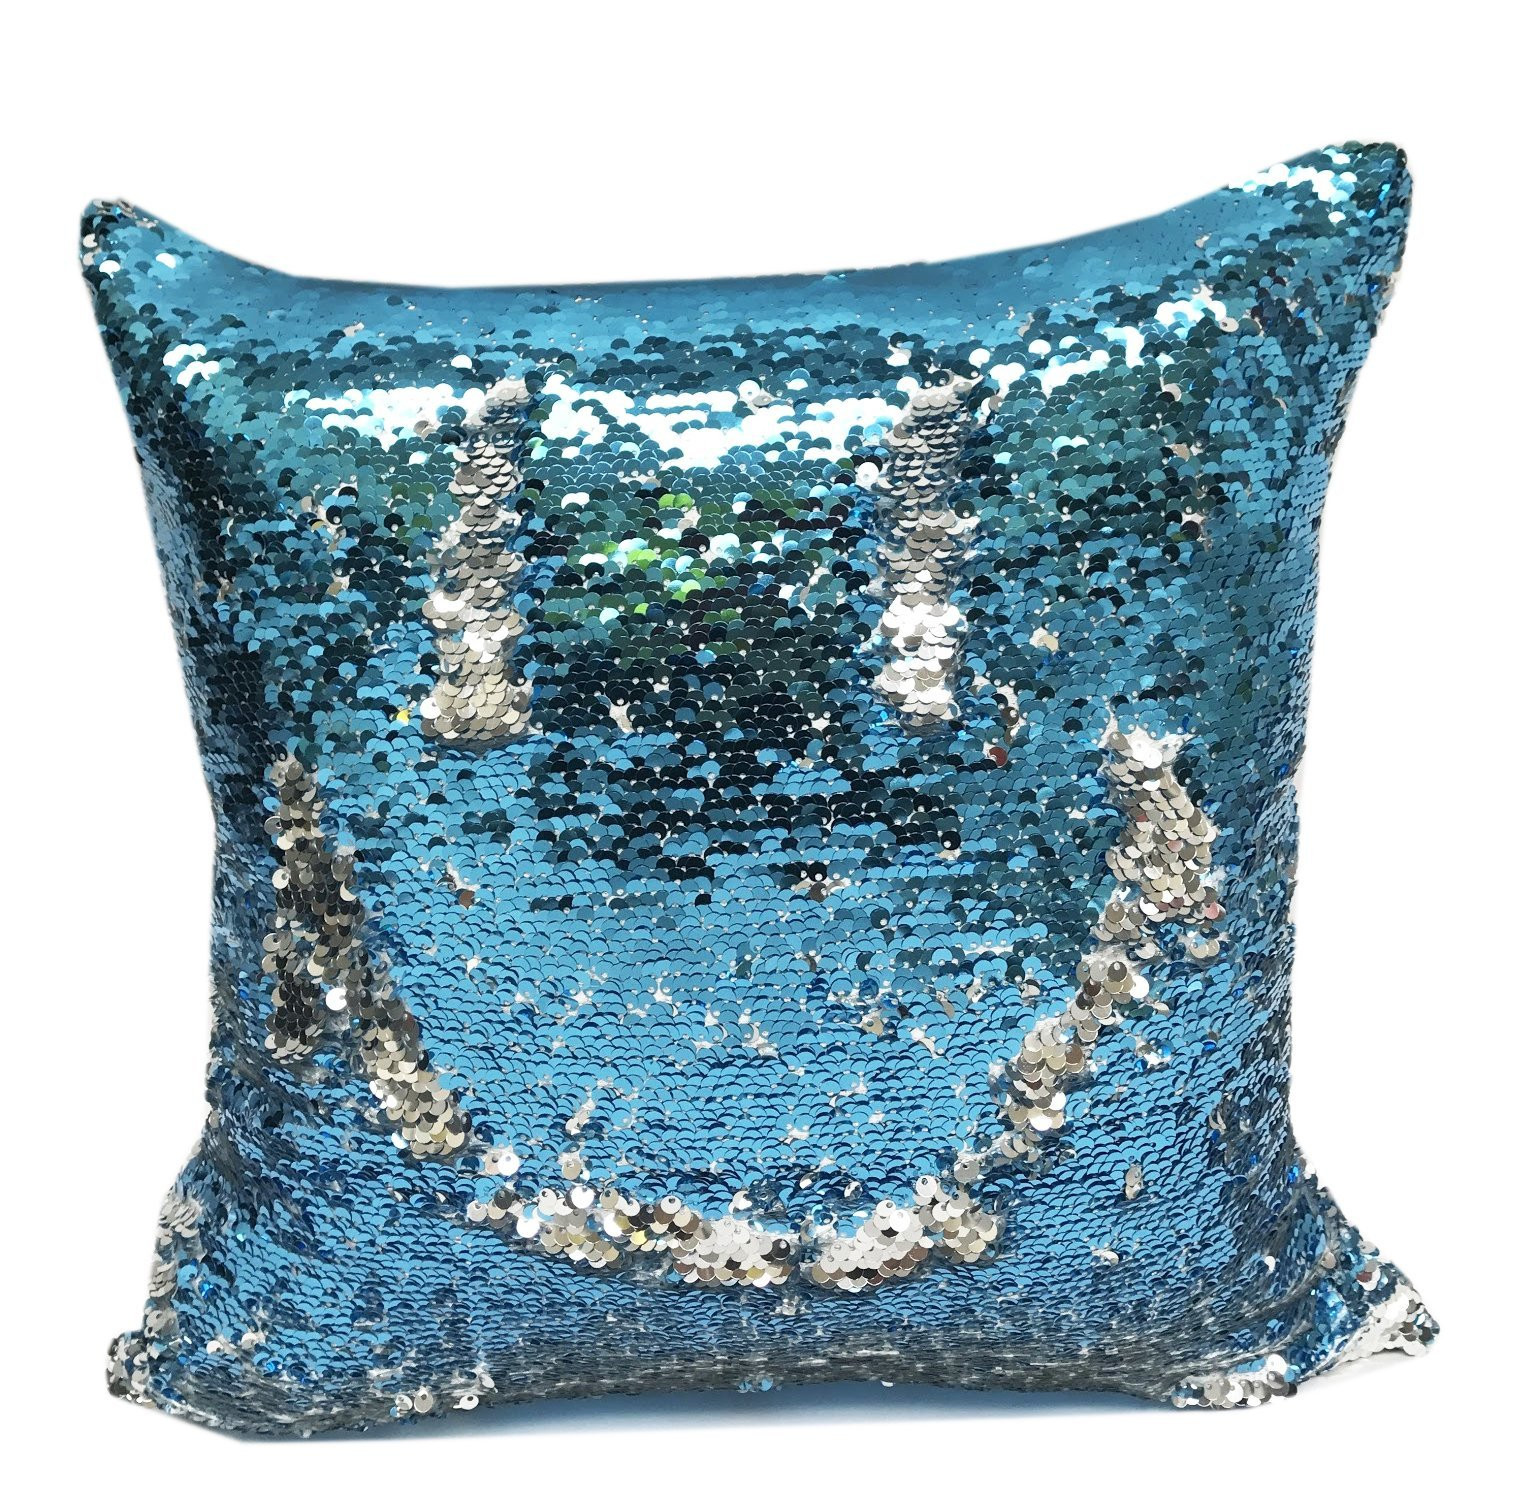 Throw Pillow Cover And Insert : Fennco Styles Glam Mermaid Sequin Throw Pillow - 16